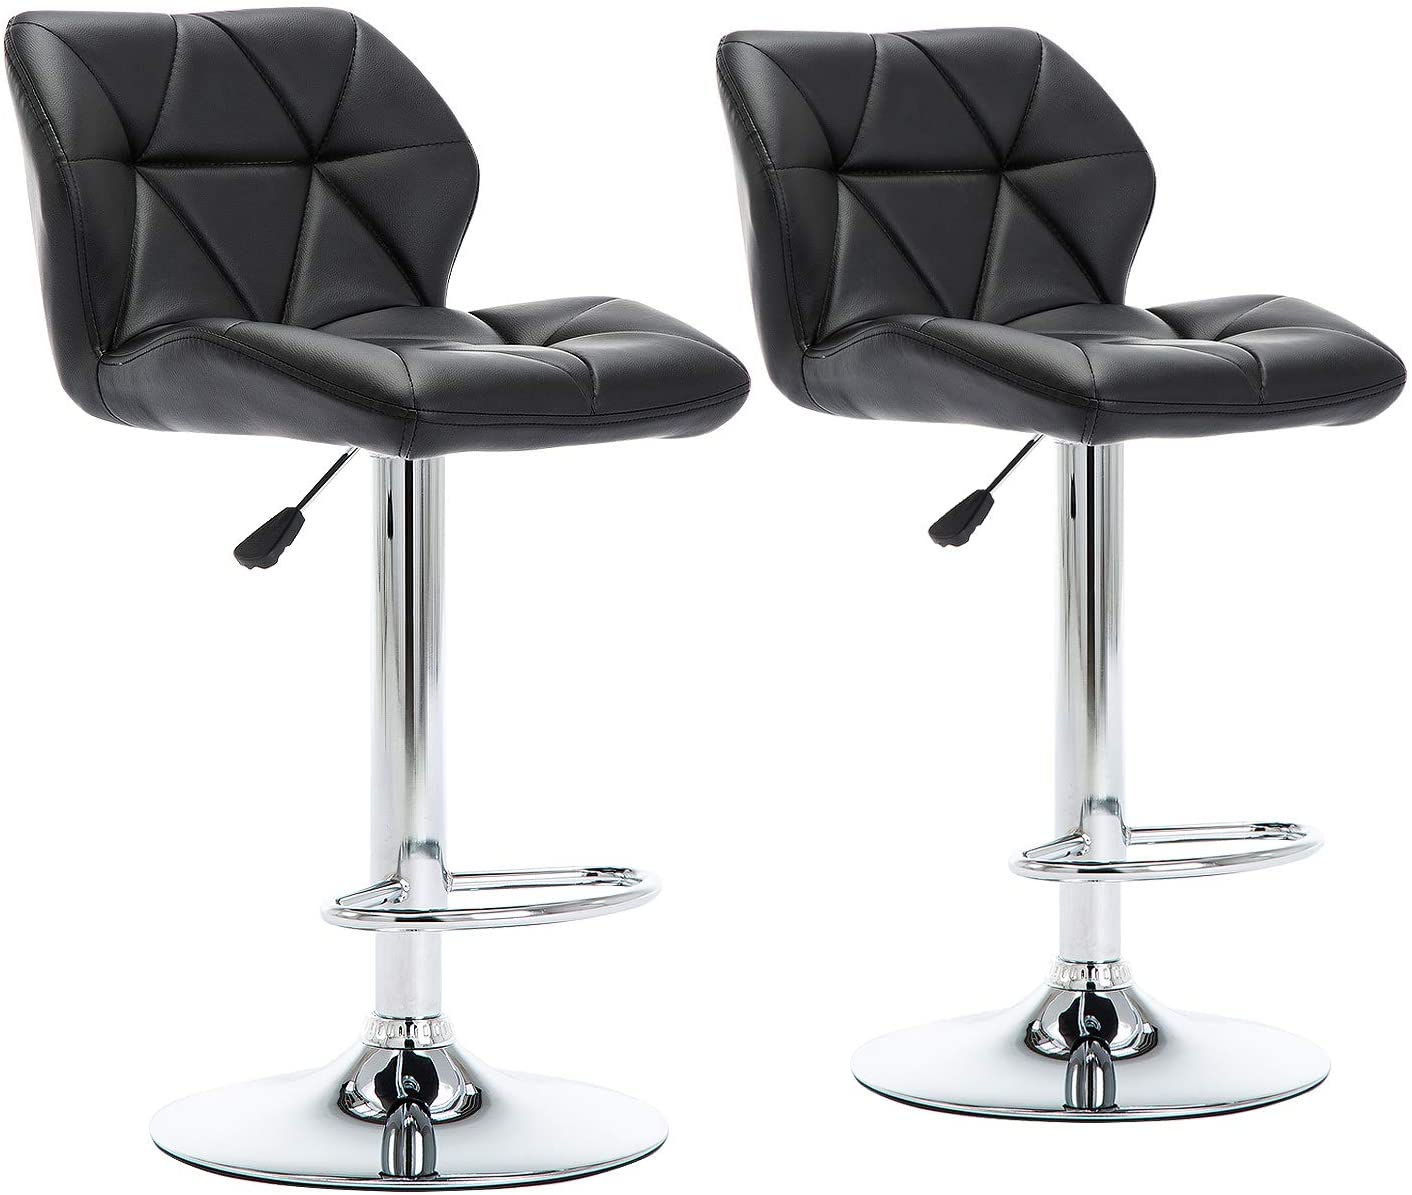 GOTMINSI Modern PU Leather Bar Stools Set of 12, Height Adjustable Swivel  Bar Chairs, Square Counter Height Stools with Back and upholstered seat. ...